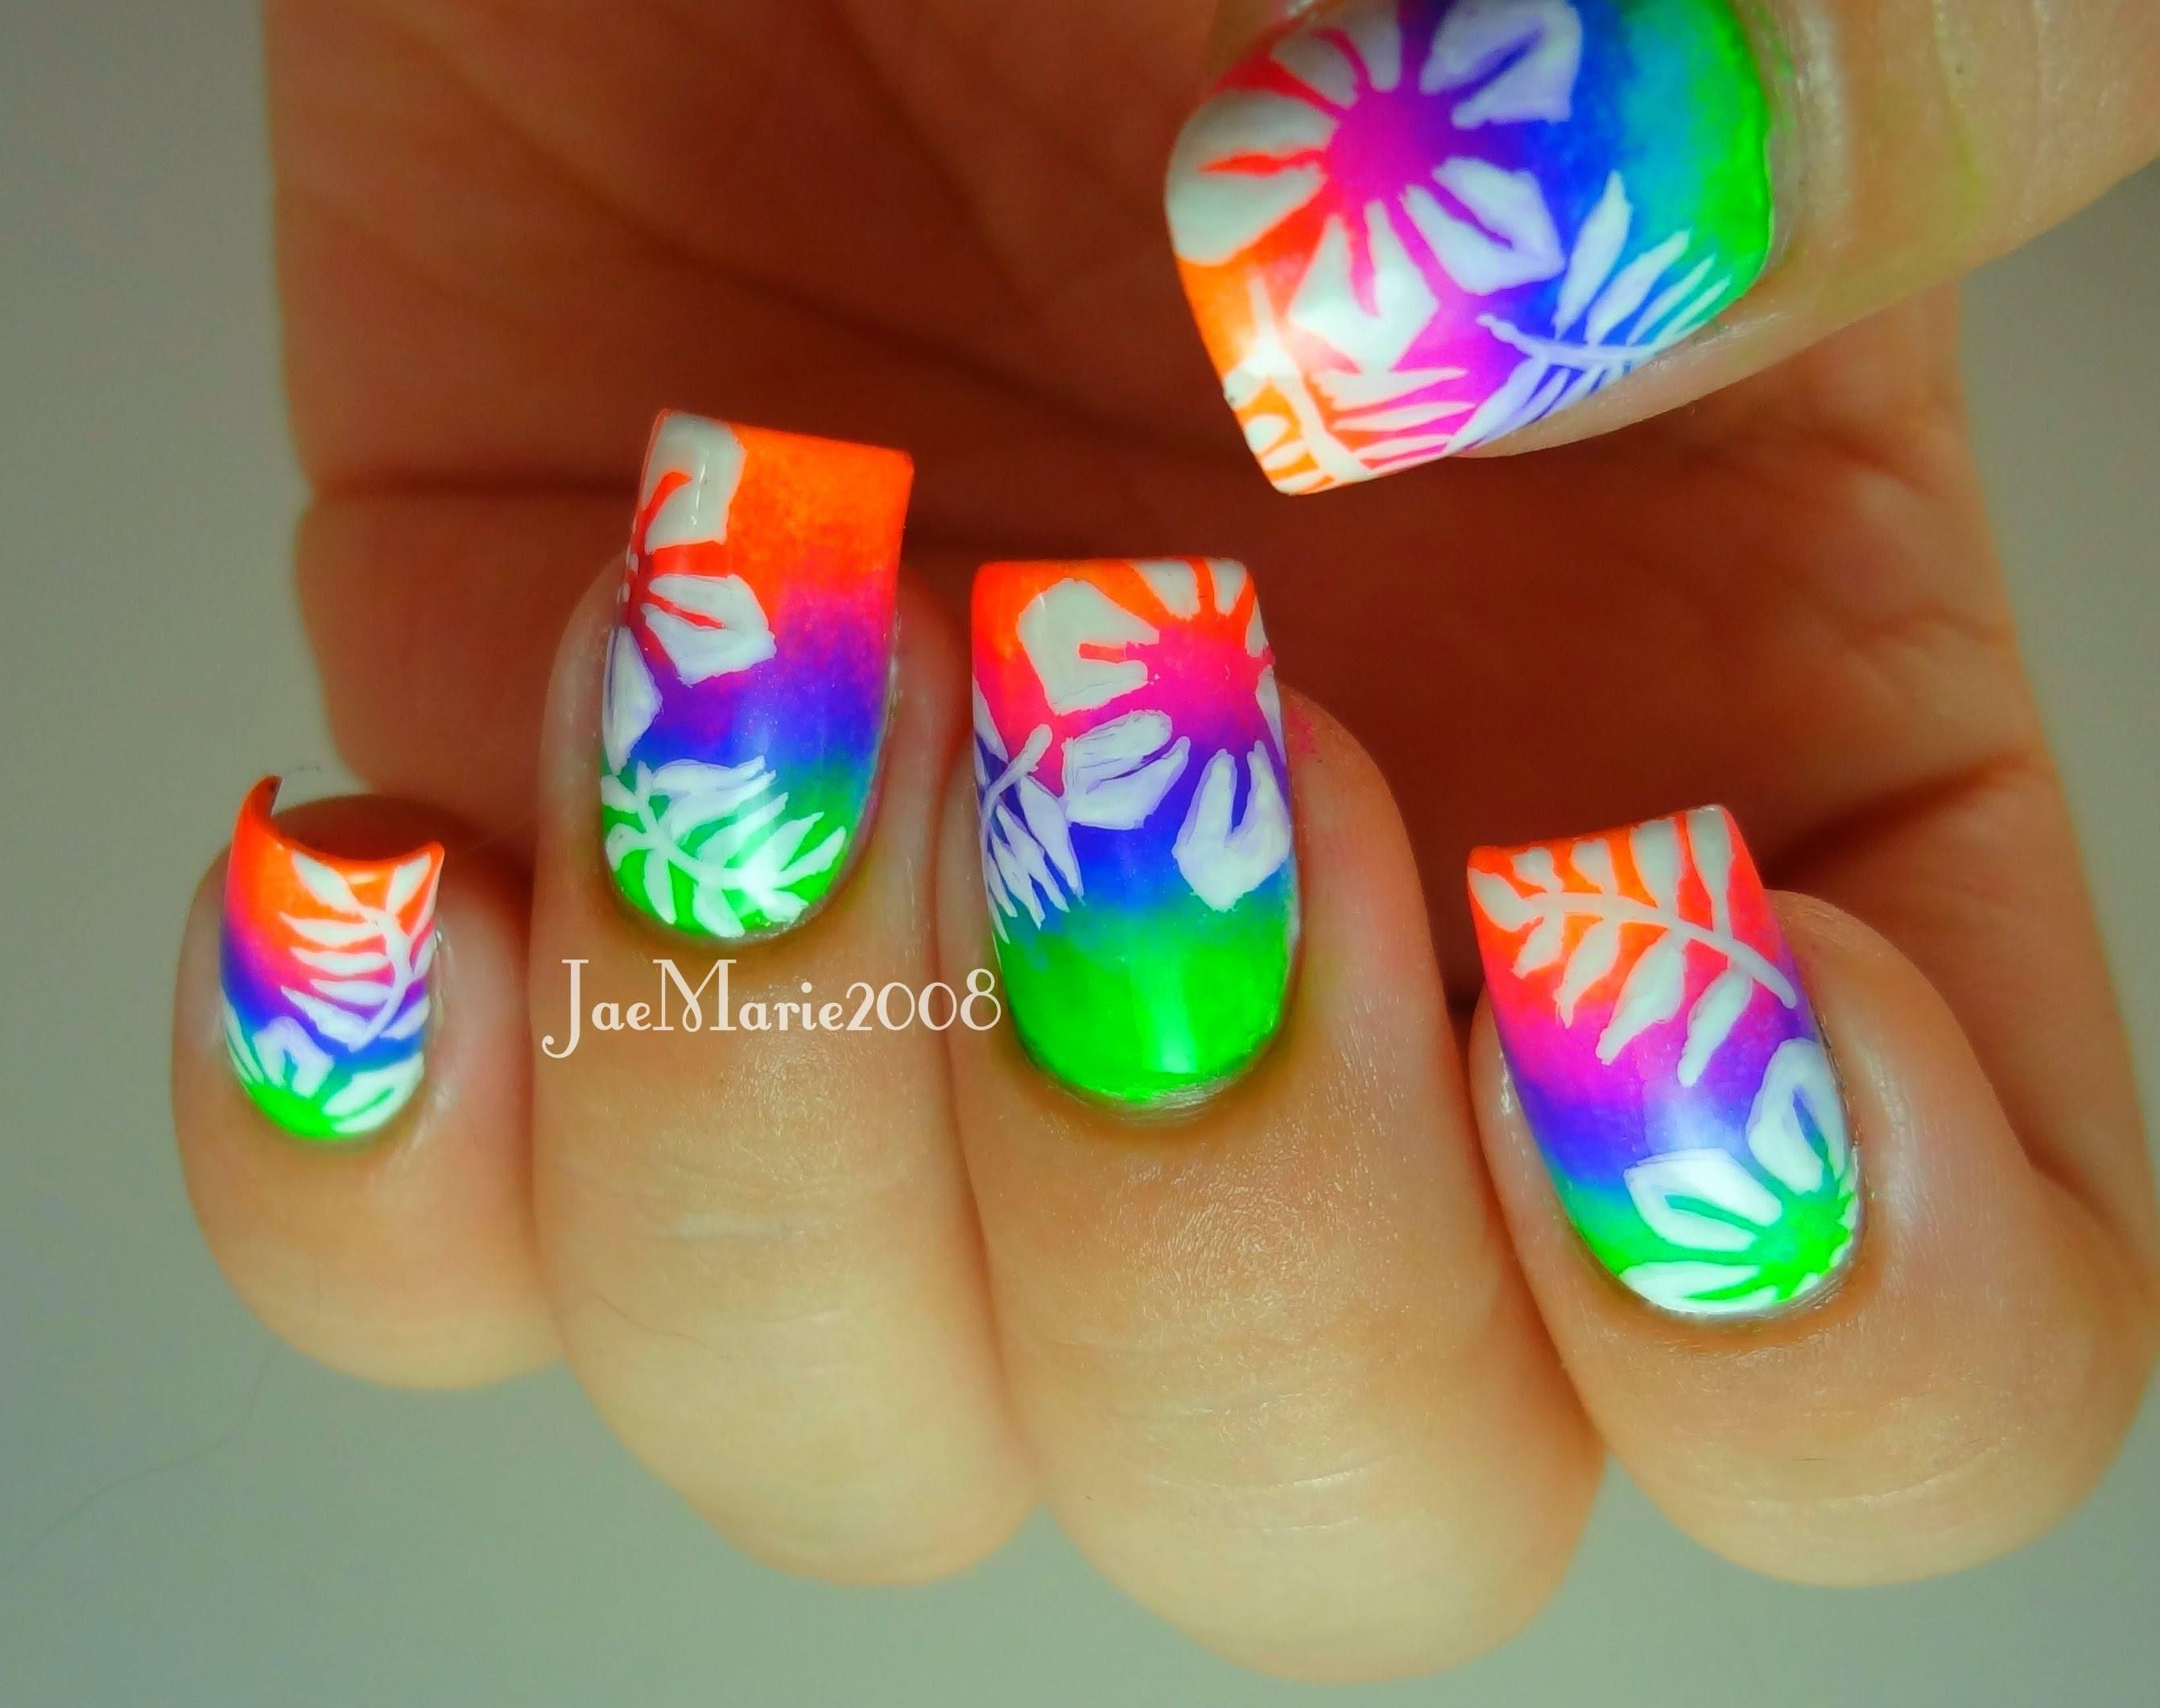 How Do You Put On Fake Nails Part 4 - Neon Summer Nail Designs ...